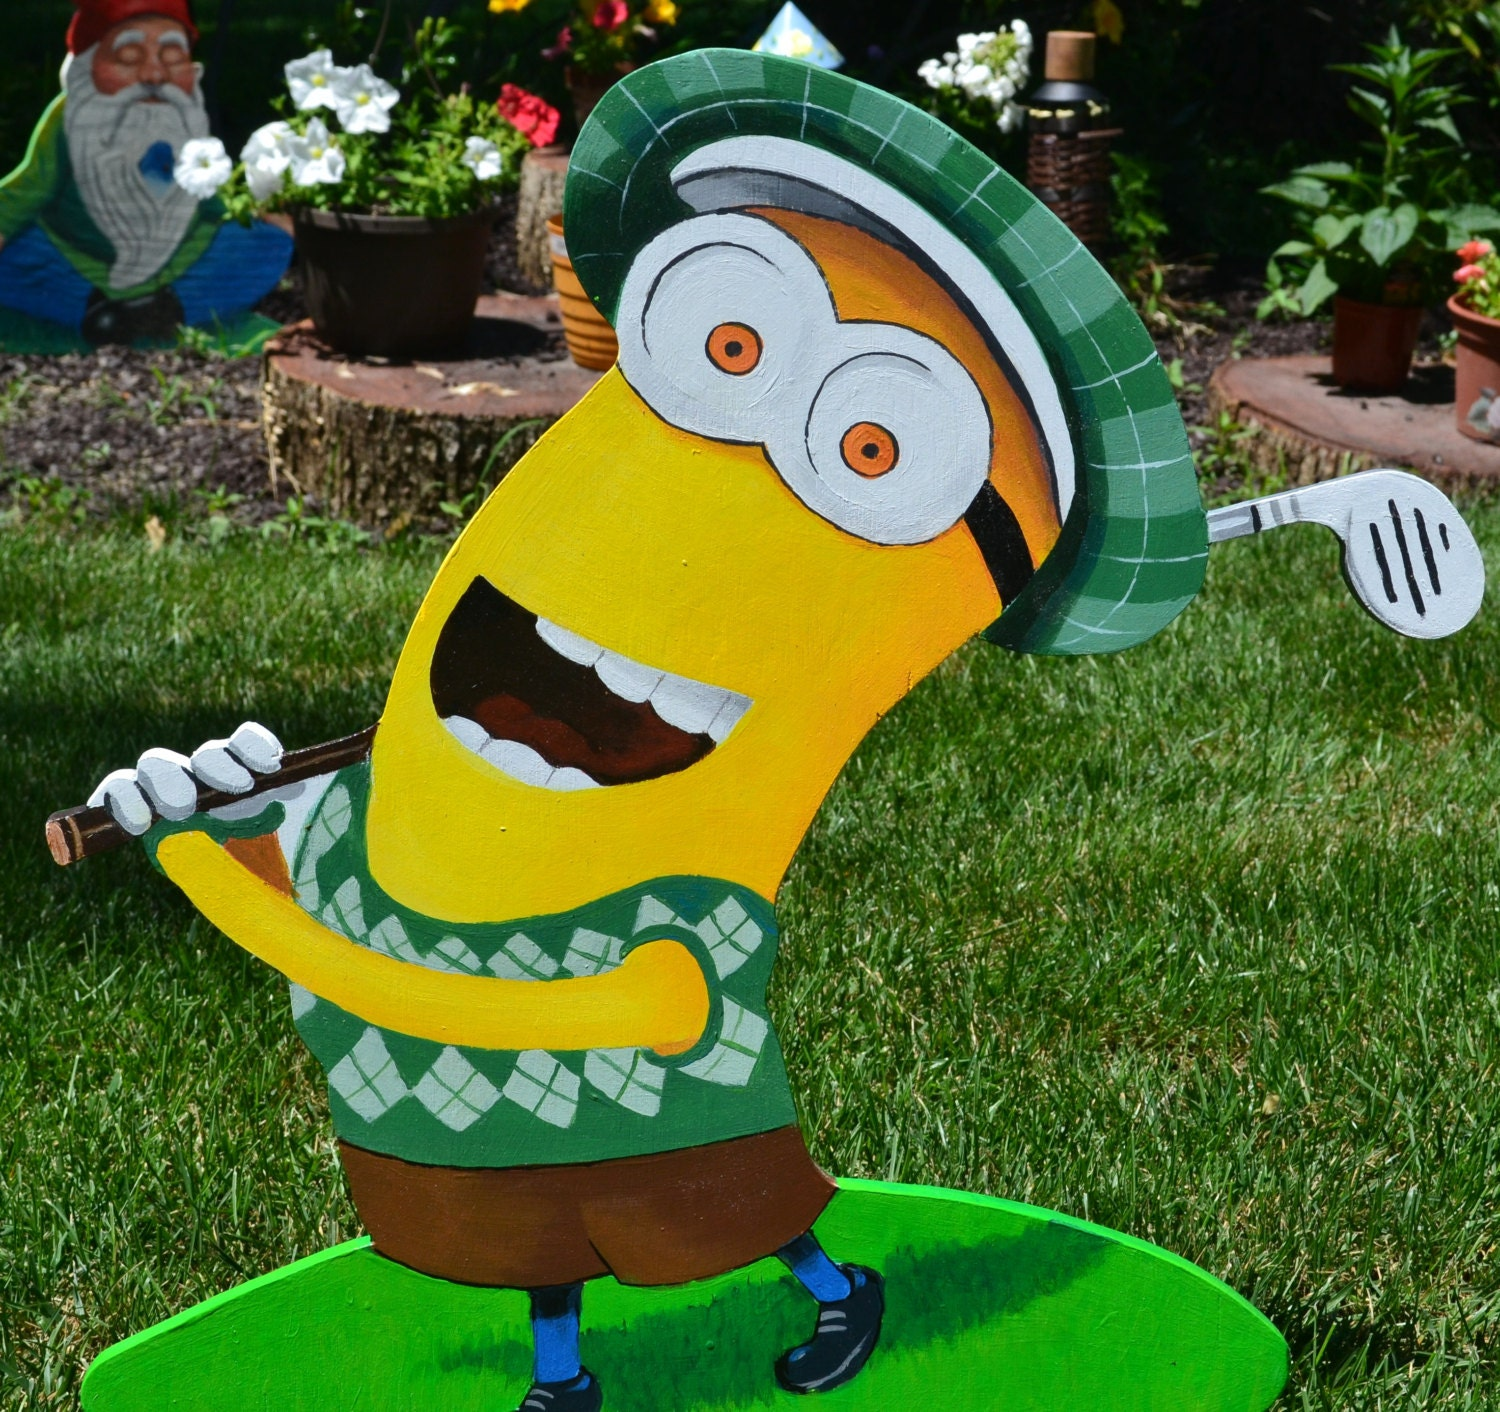 Kevin Minion teeing off in golf lawn art stake or wall plaque